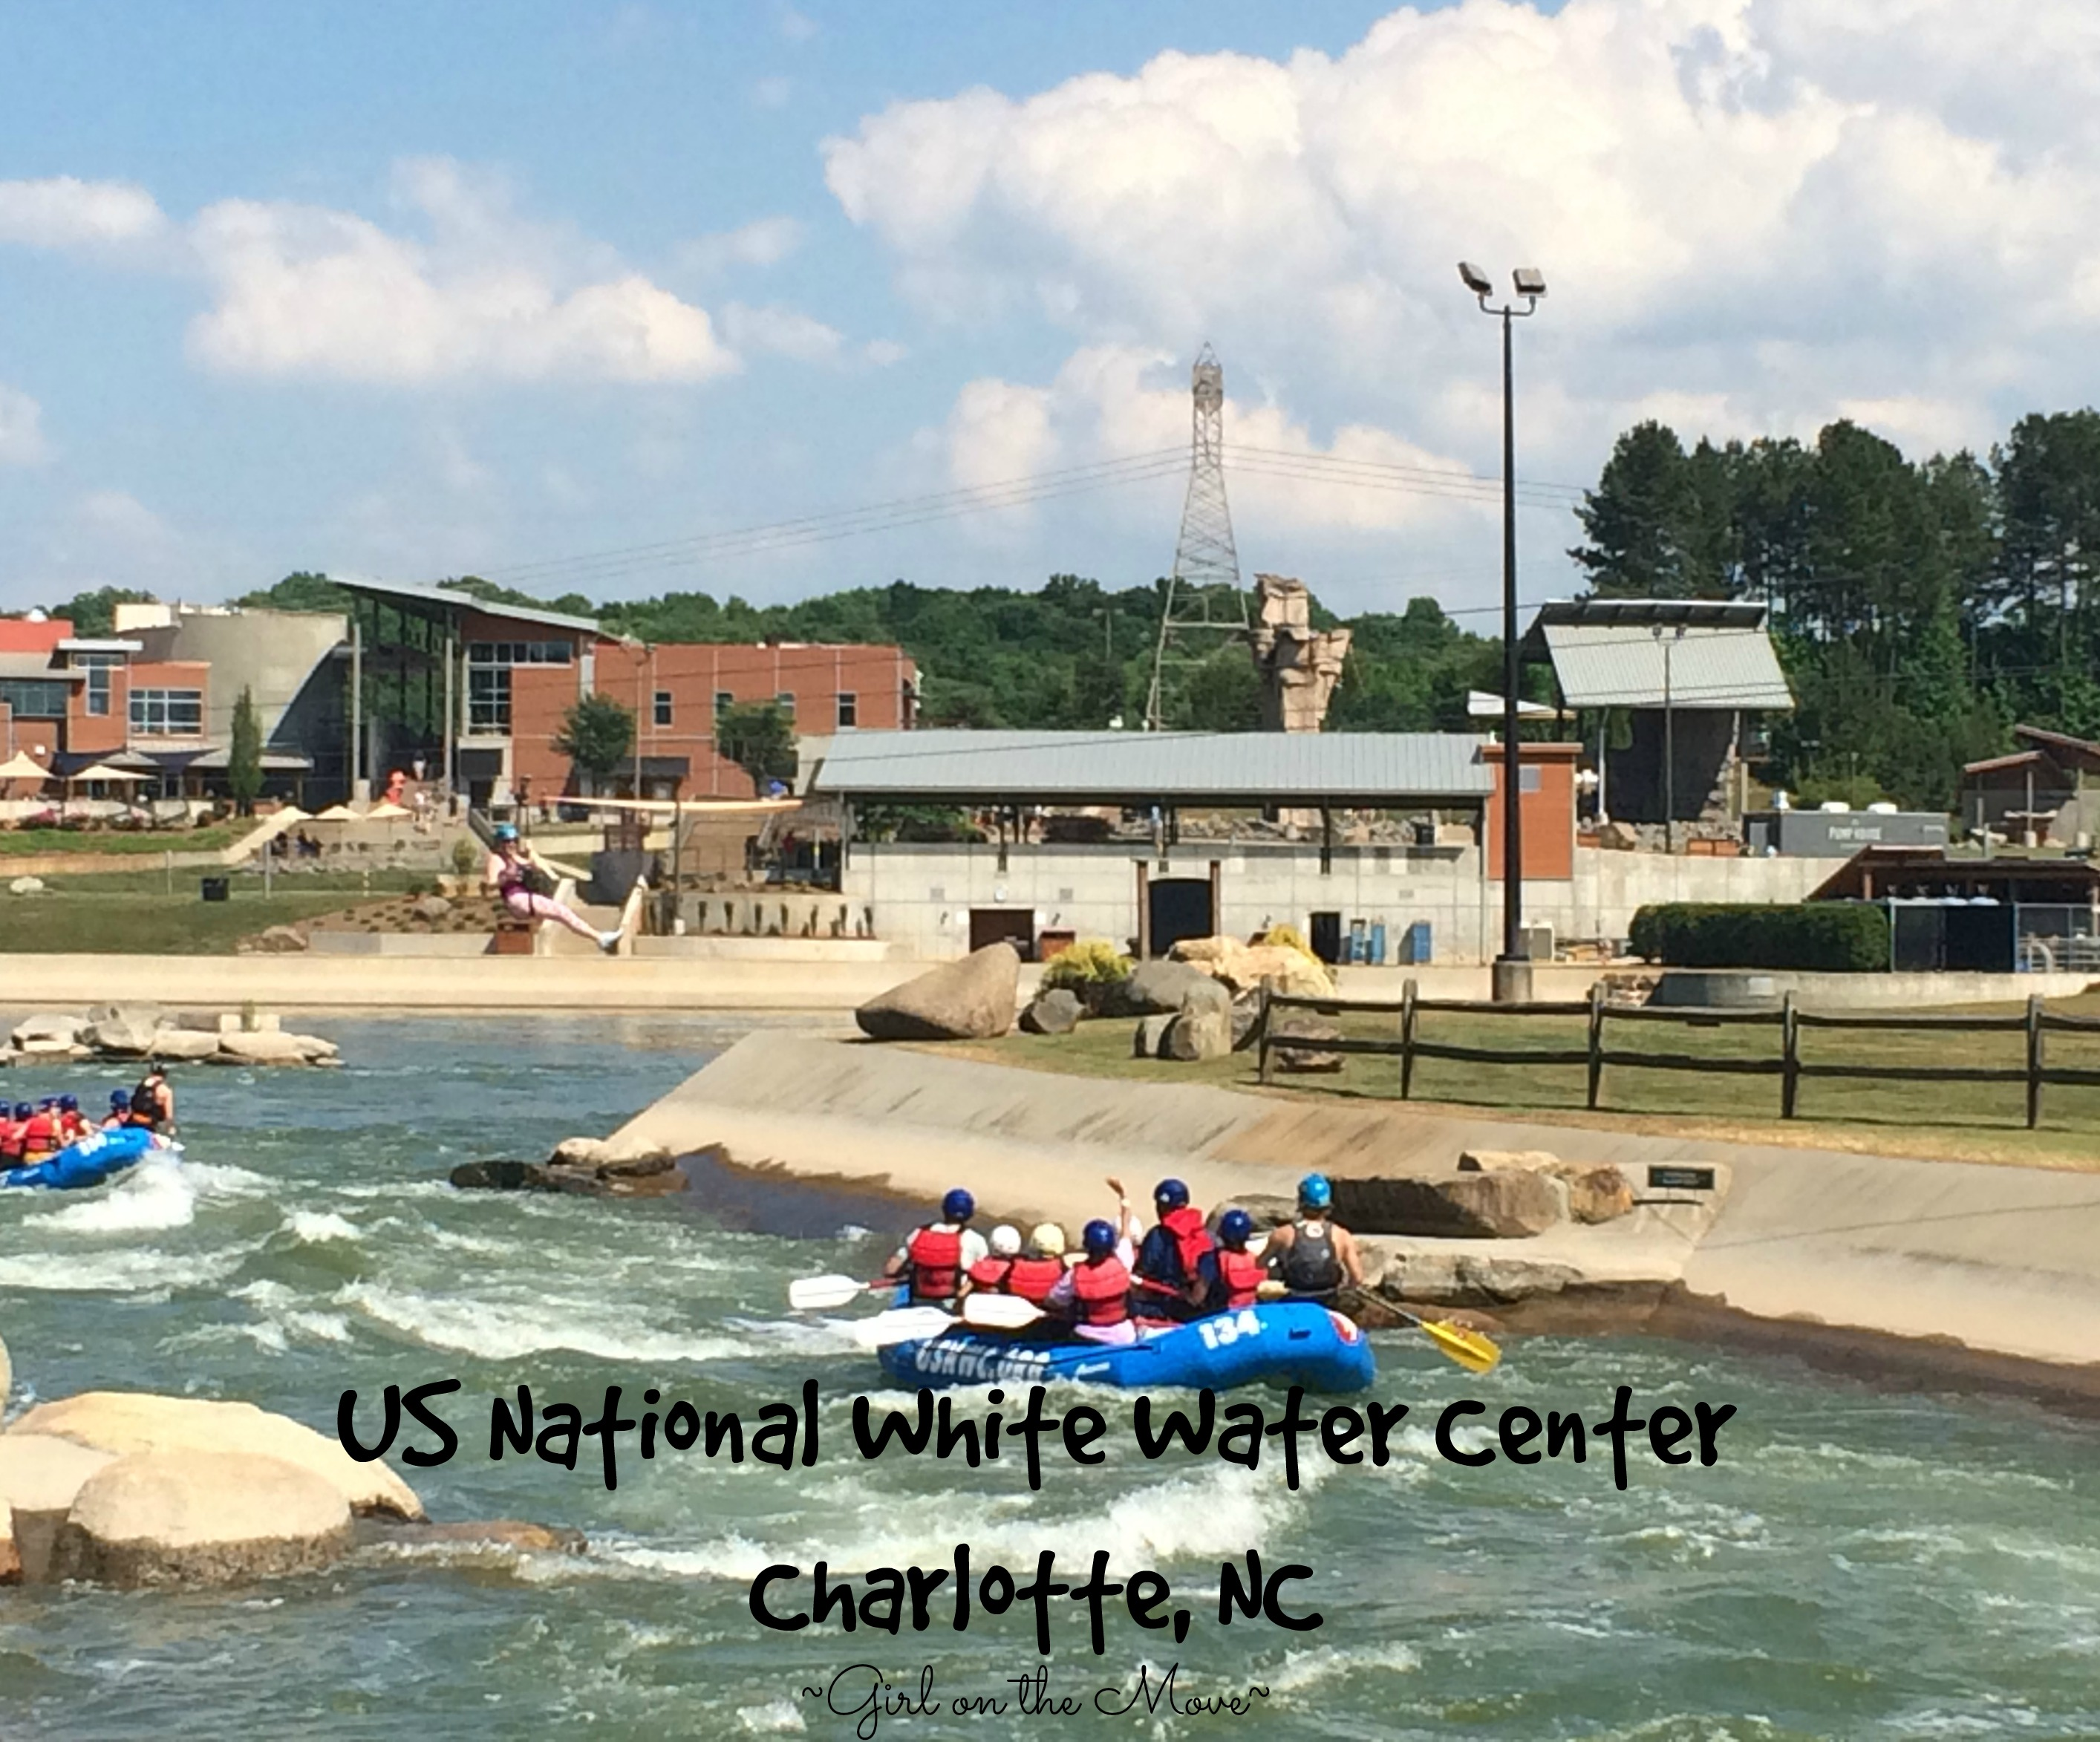 Ziplining, white water rafting, hiking and more at the US National White Water Center